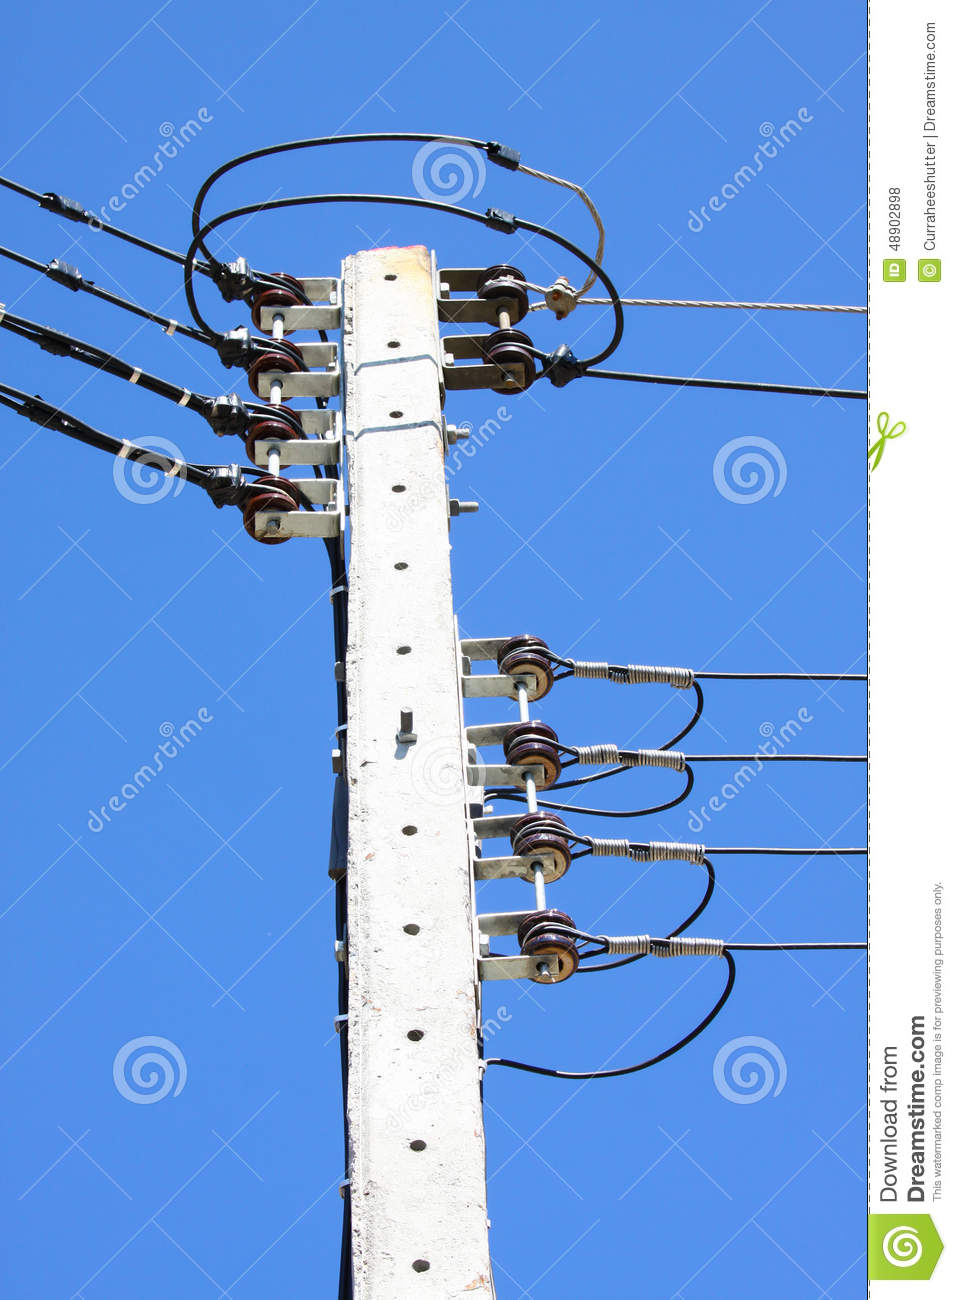 Cartoon Electrical Wire : Electric cable wire on sky background royalty free stock